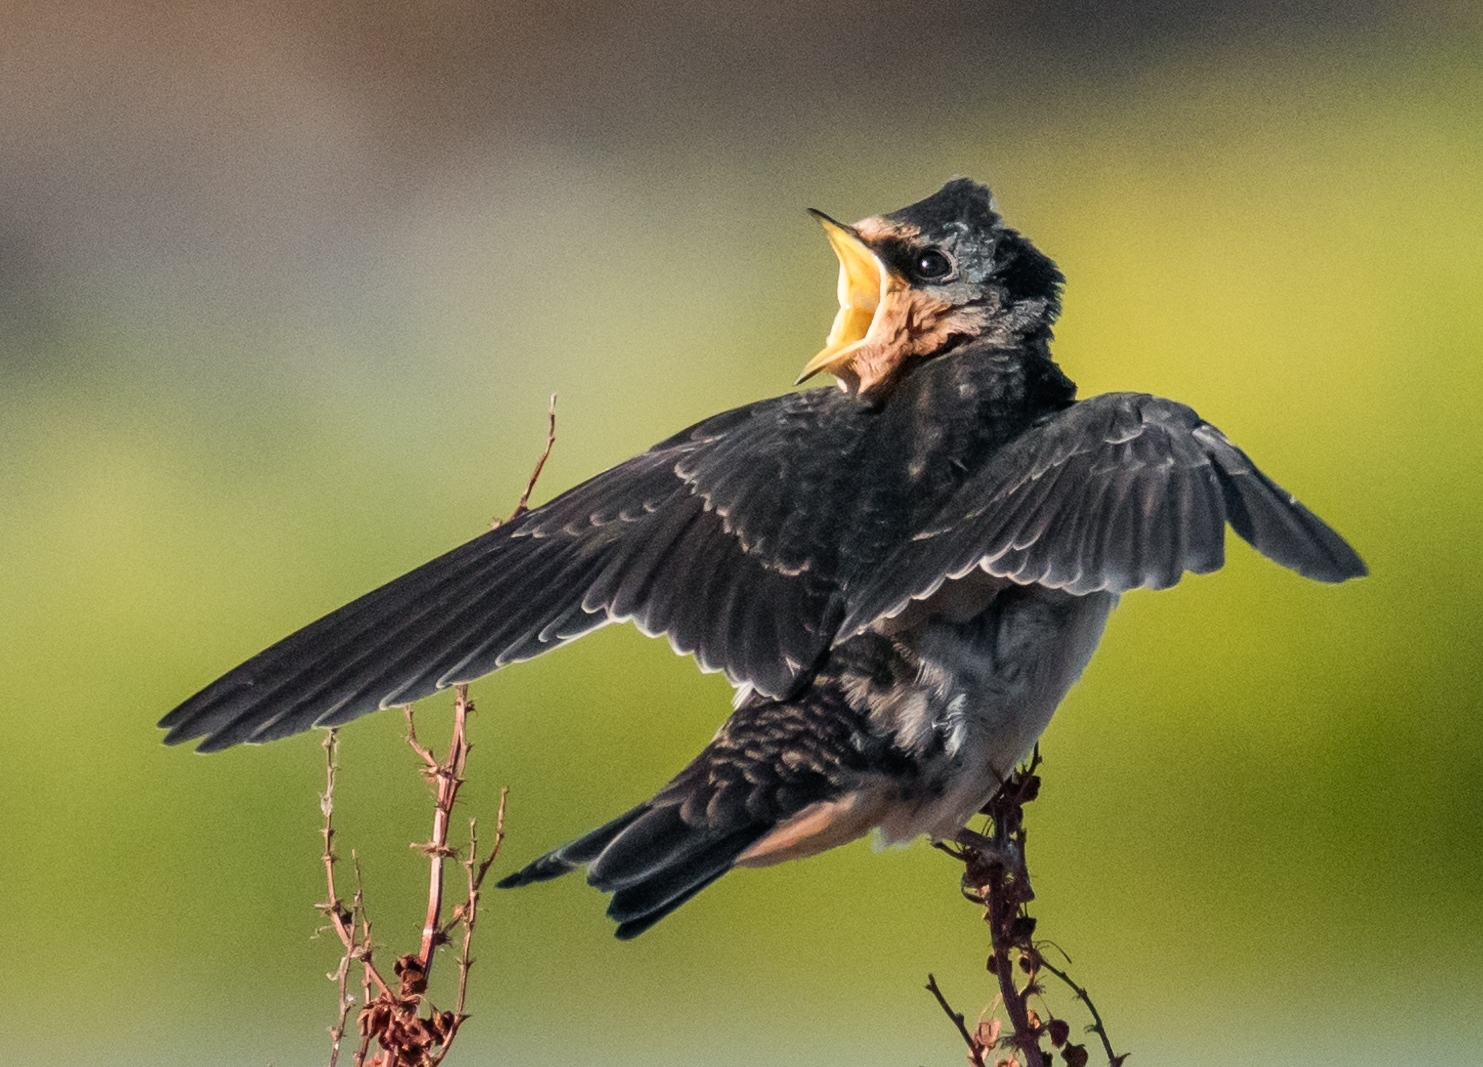 Barn-swallow-Hirundo-rustica-chick-being-fed-an-insect-1-Barn-swallow-chick-flutters-its-wings-and-opens-mouth-to-attract-parents-NM-Best-In-Show-by-Susie-Kelly-MR